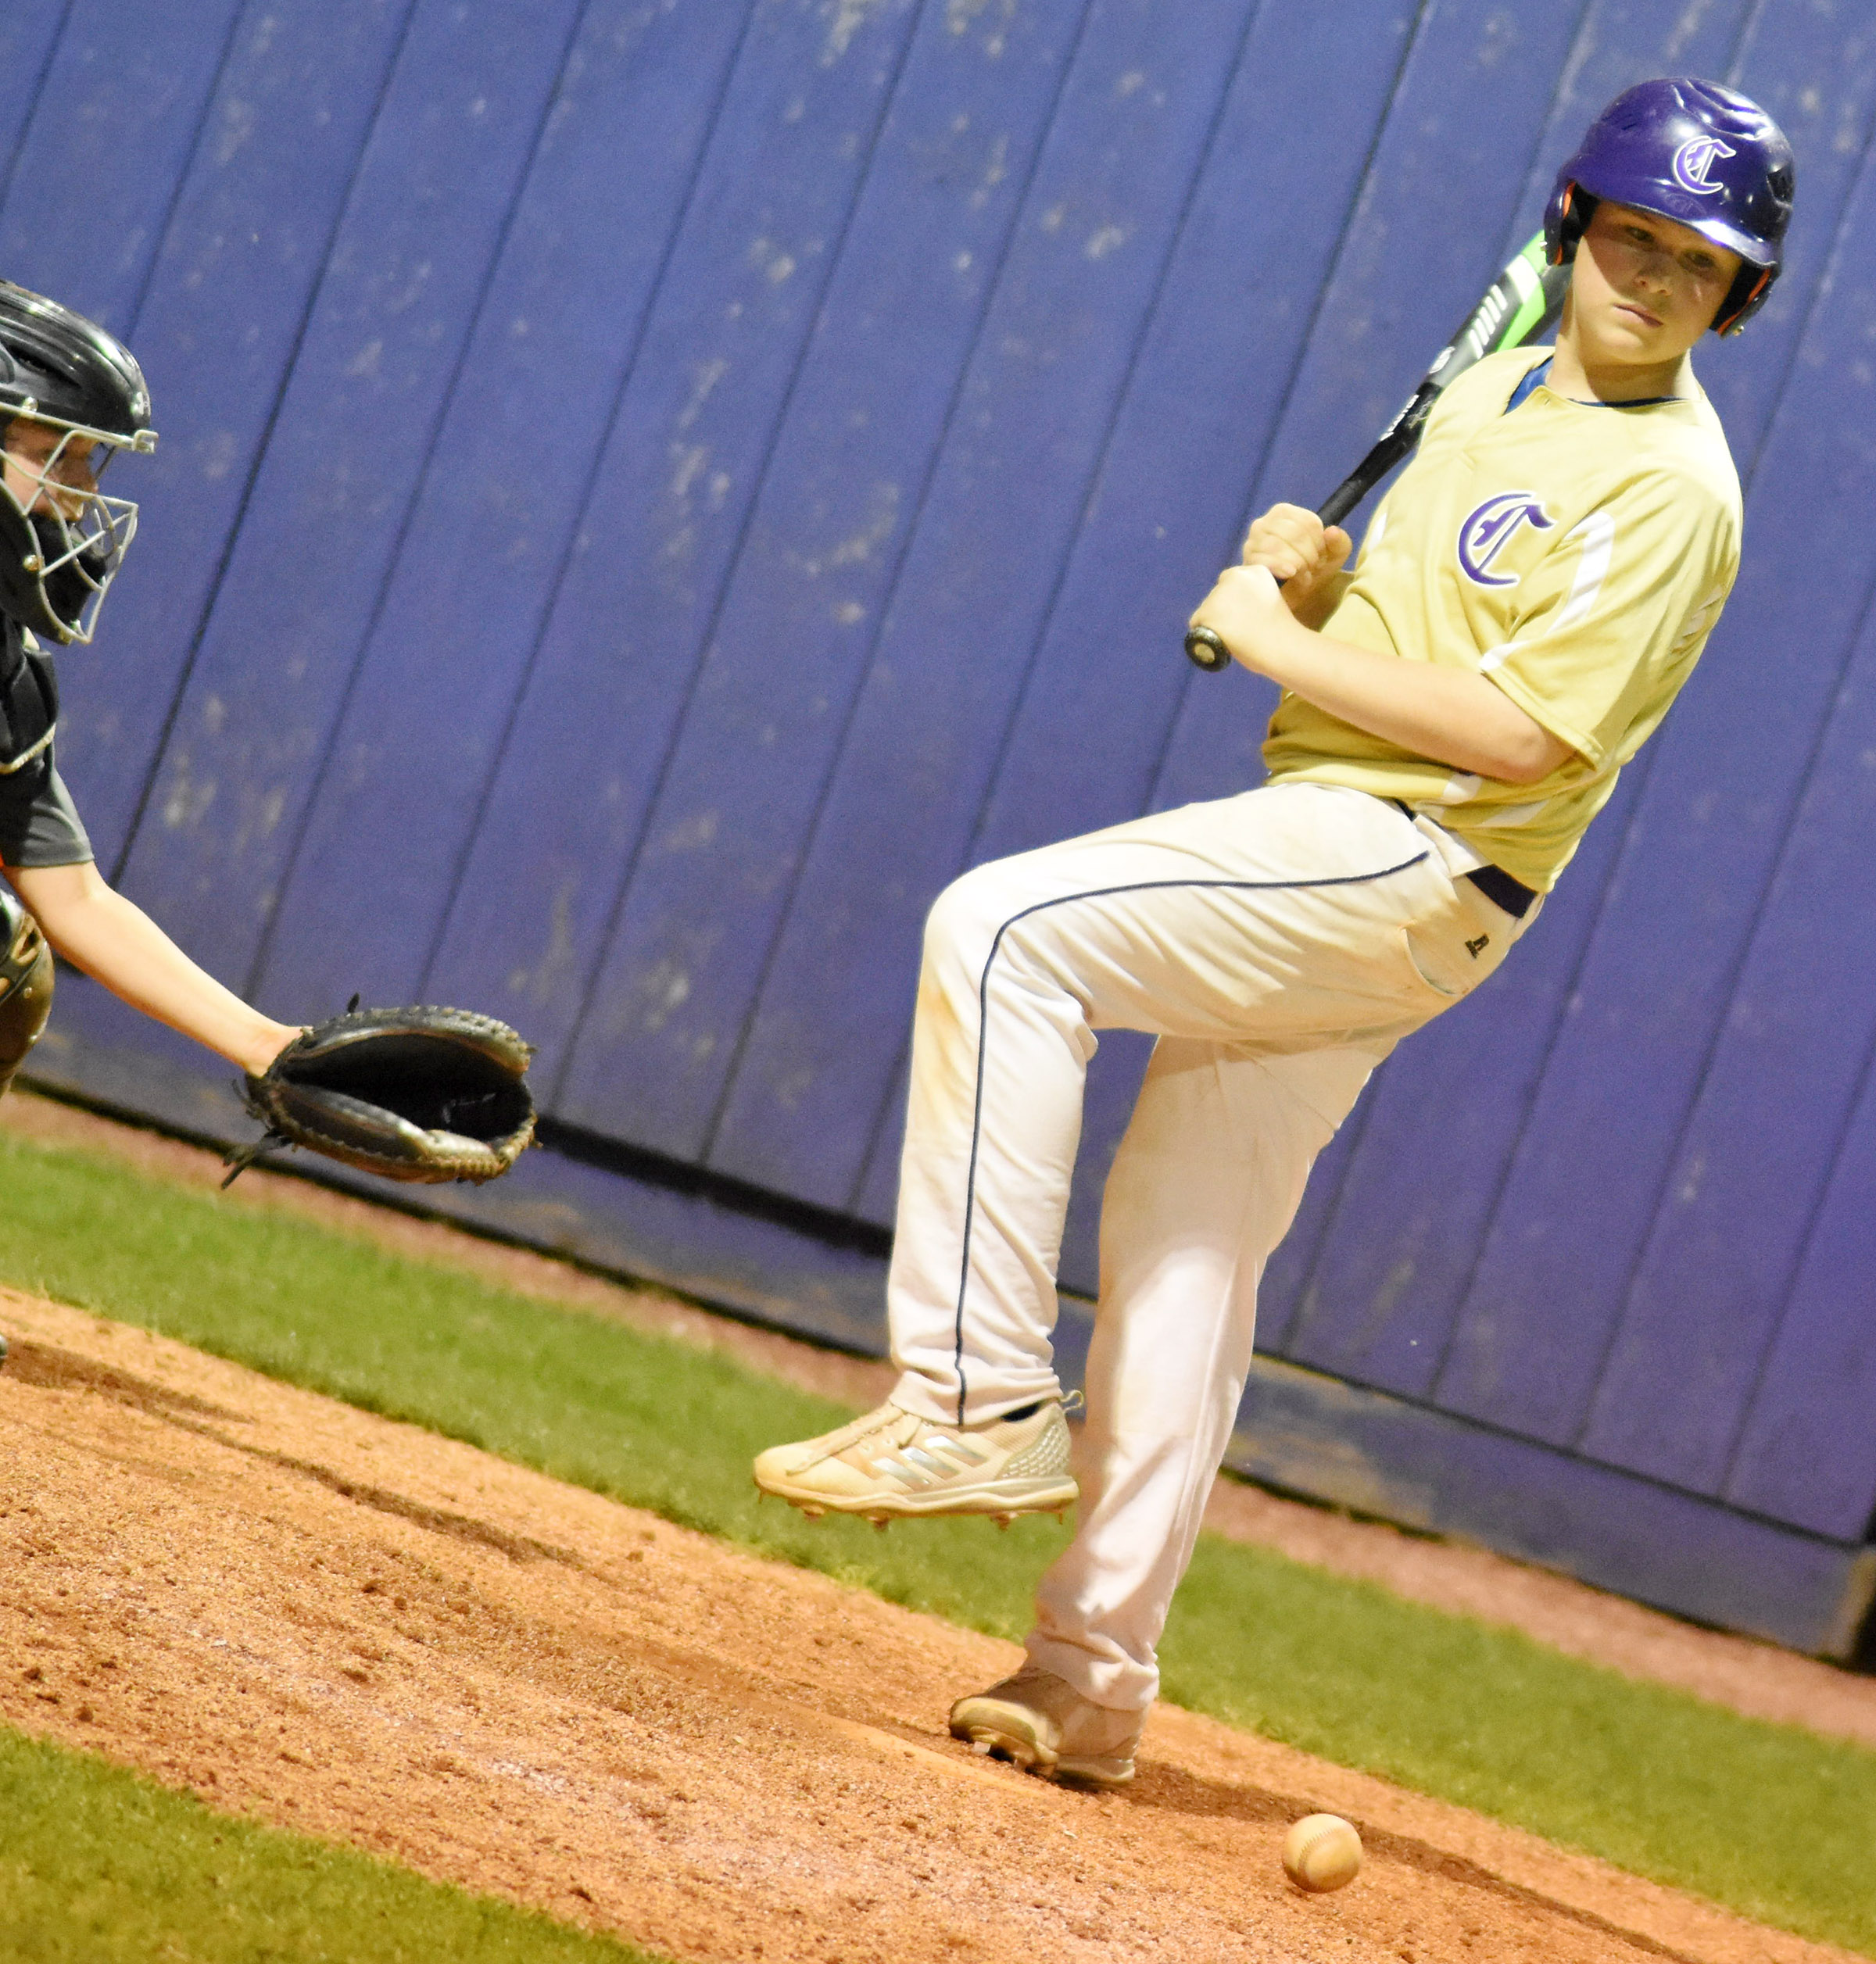 CMS seventh-grader Weston Mattingly is hit by a pitch.